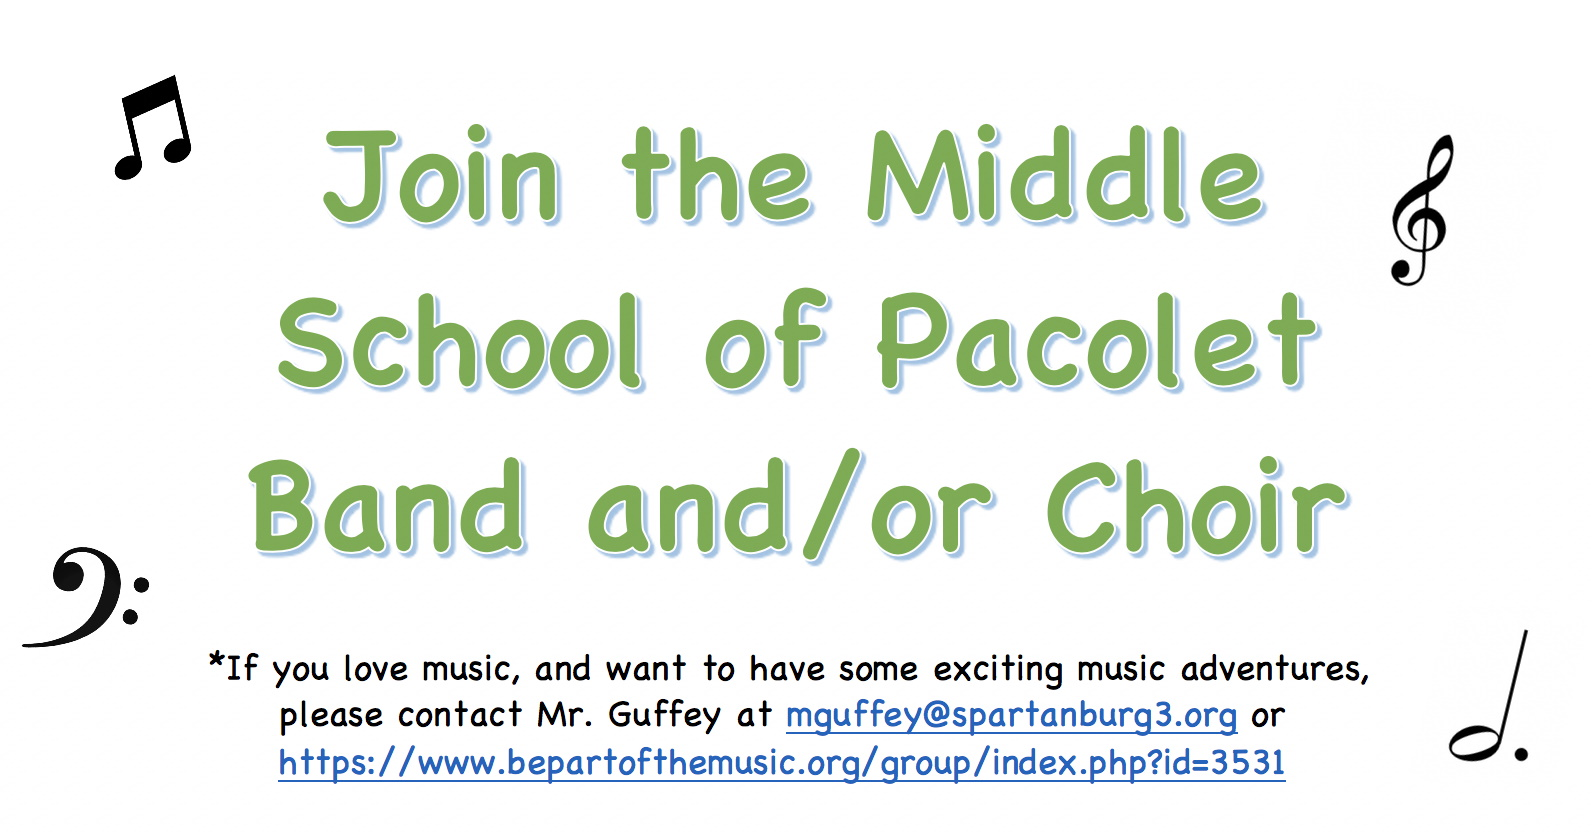 Interested in band or choir? Contact Mr. Guffey at mguffey@spartanburg3.org